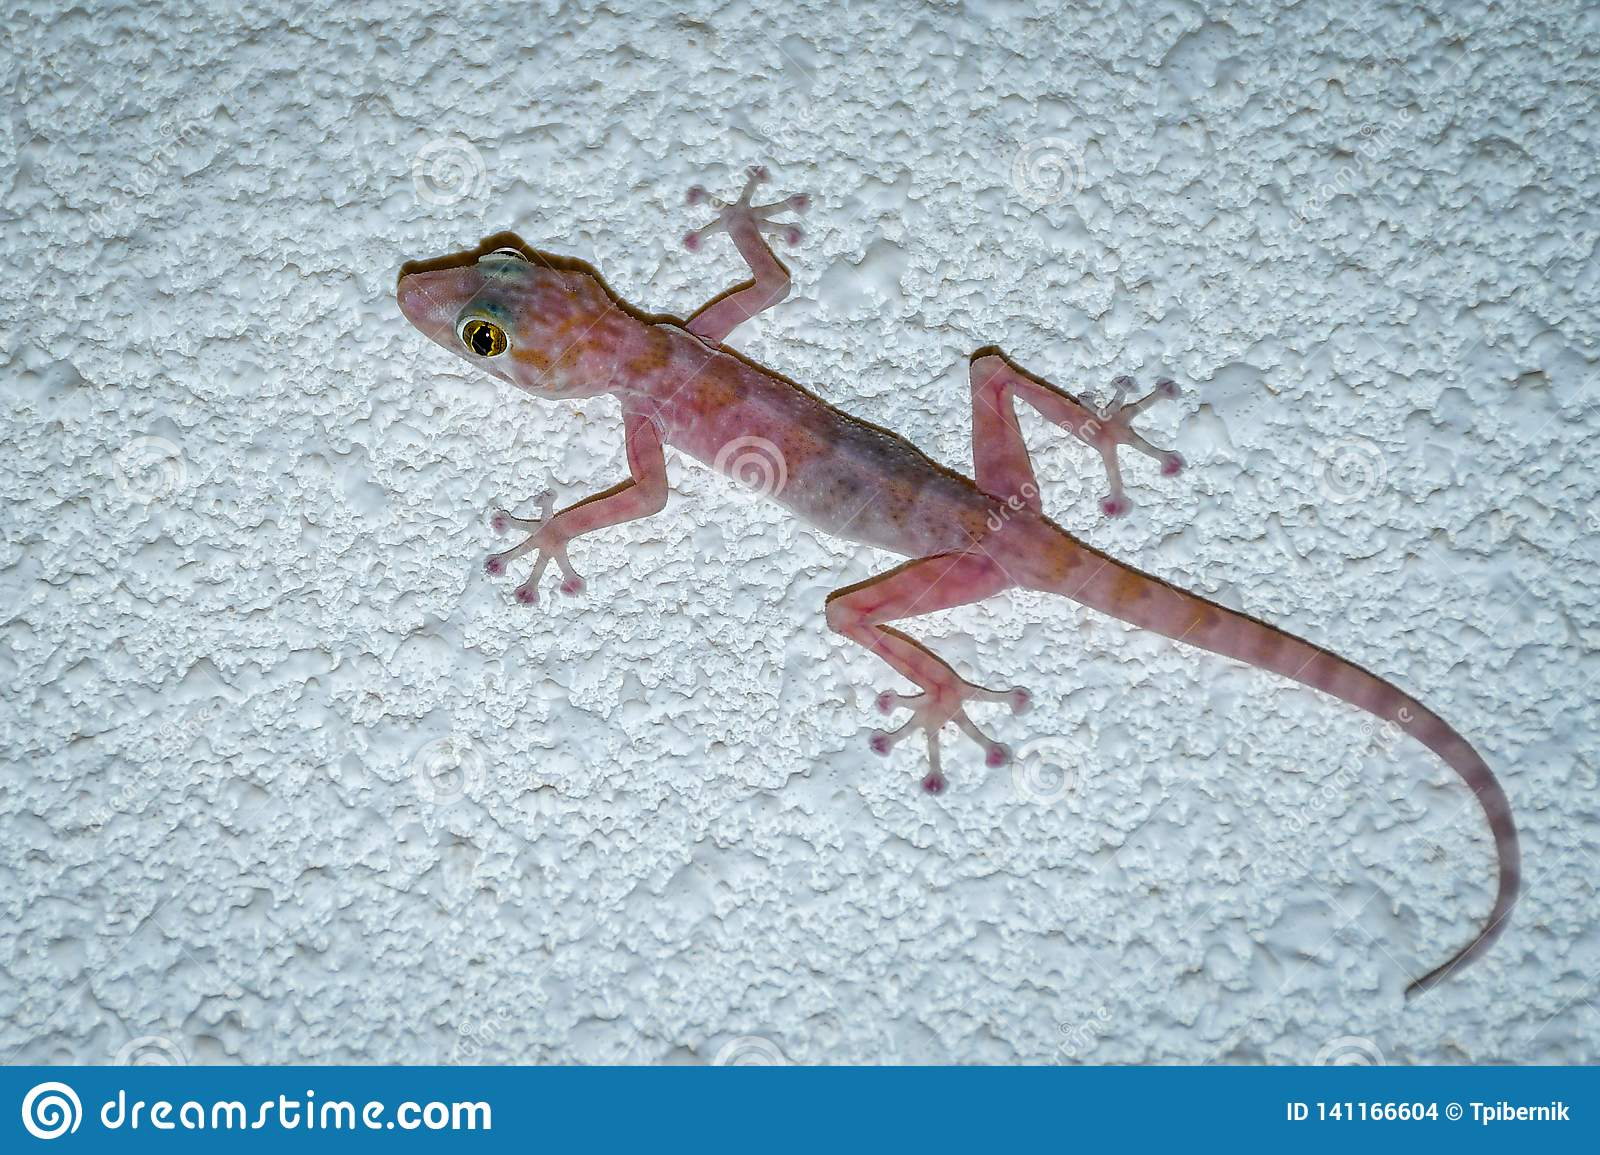 Colorful gecko with big eyes climbing and hunting flies